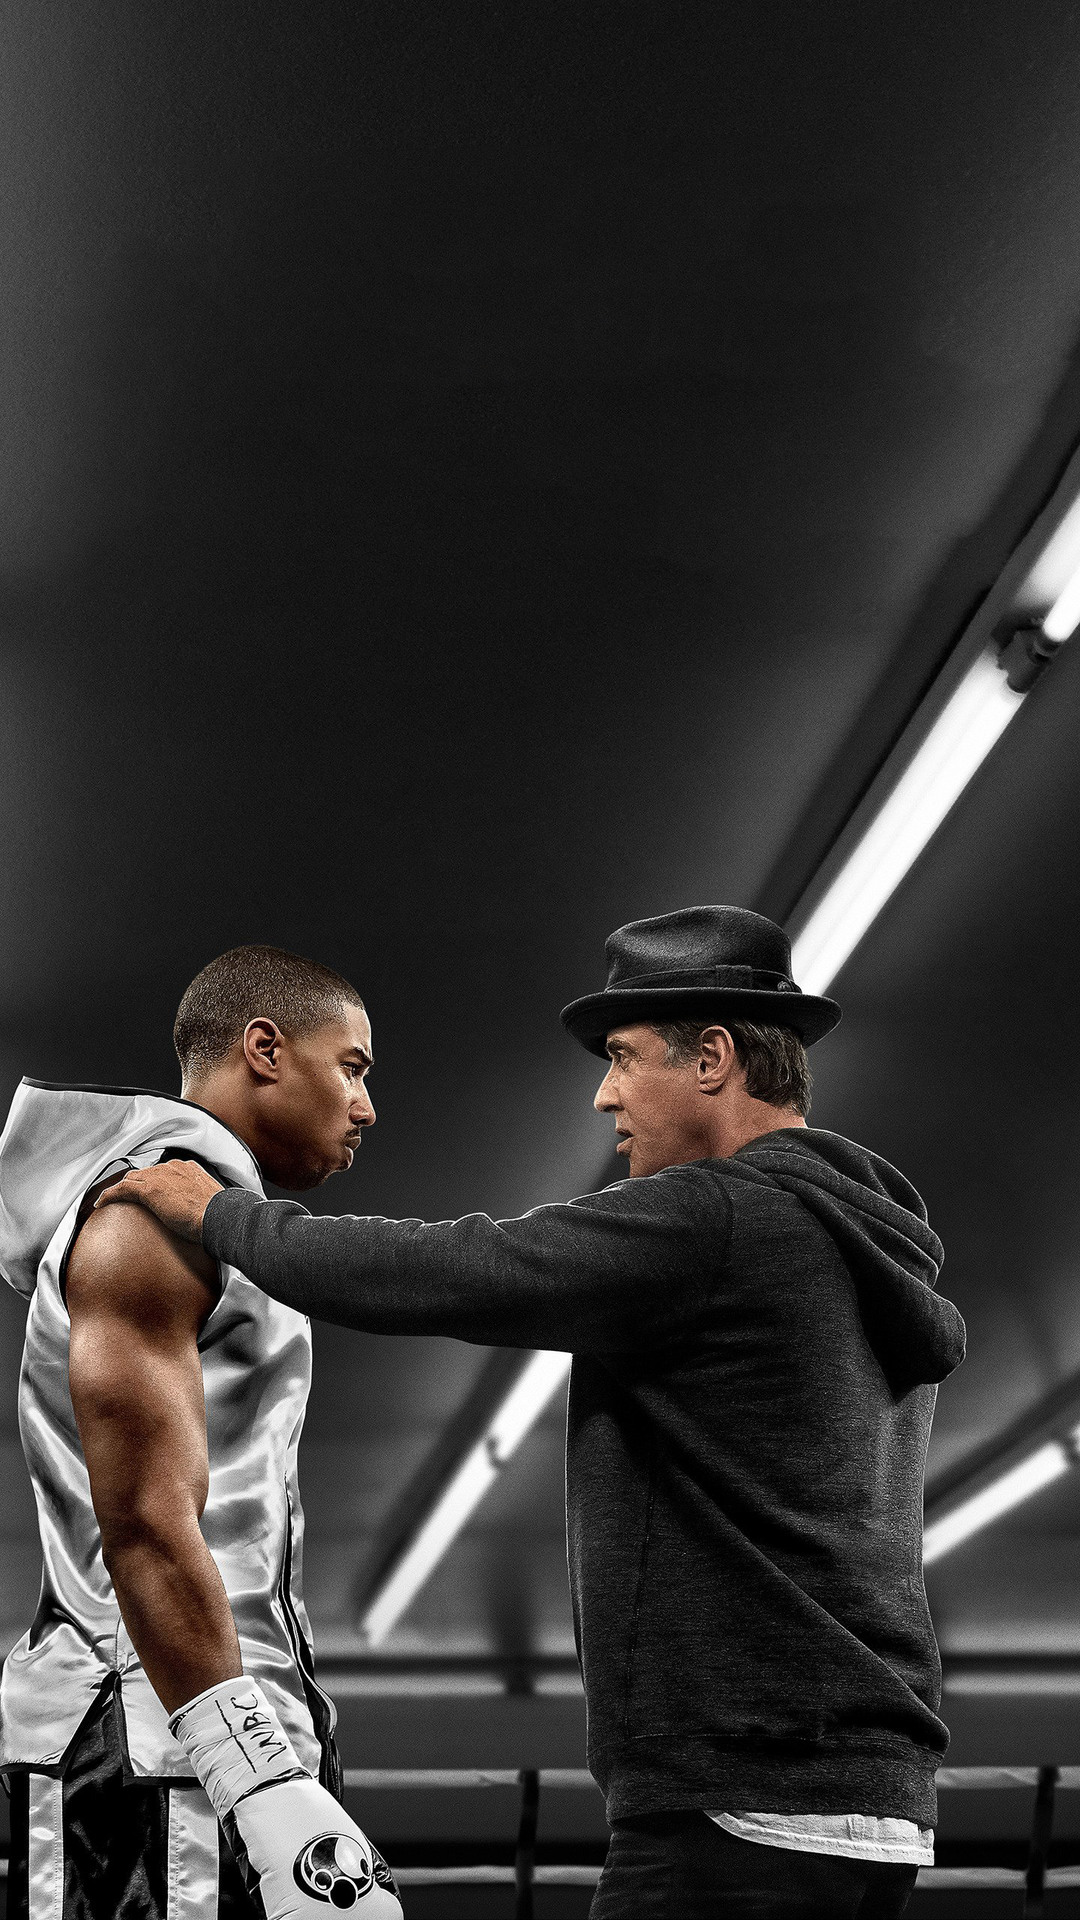 1080x1920 michael b jordan and sylvester stallone in creed movie iphone 7 6s 6 plus pixel xl. Black Bedroom Furniture Sets. Home Design Ideas